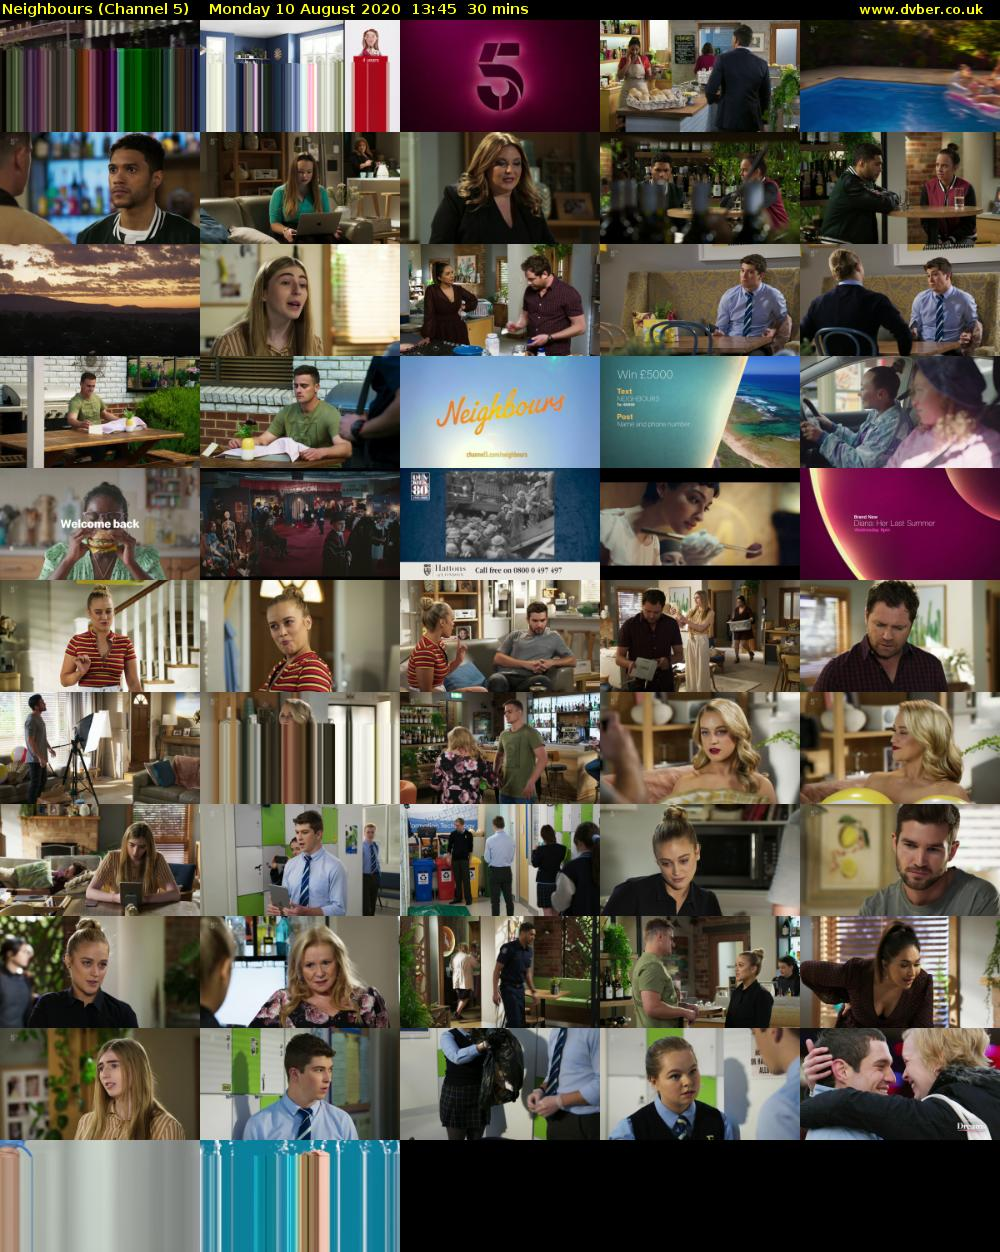 Neighbours (Channel 5) Monday 10 August 2020 13:45 - 14:15